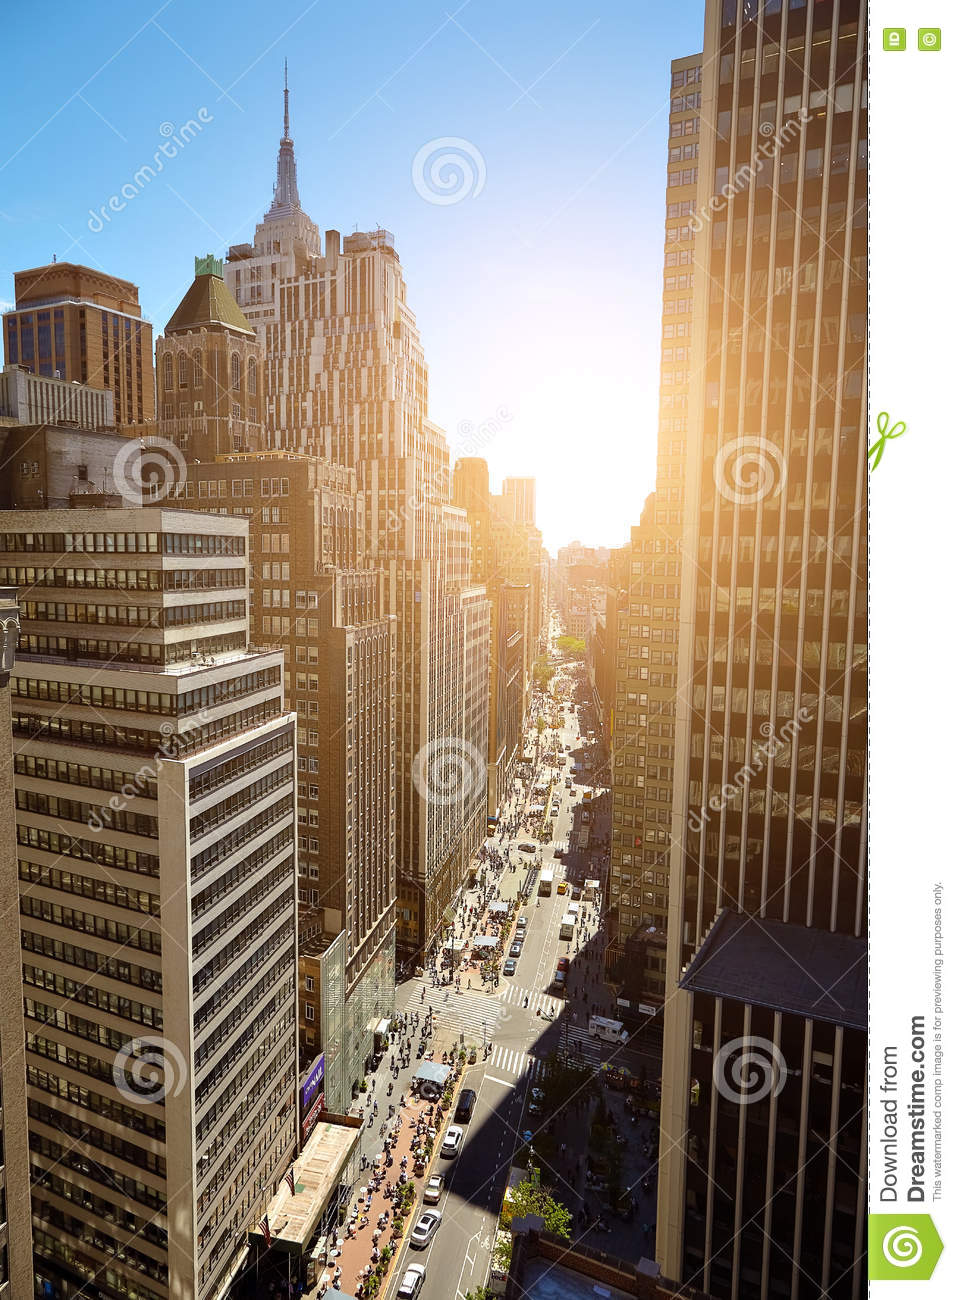 Vista de rascacielos en Manhattan, New York City